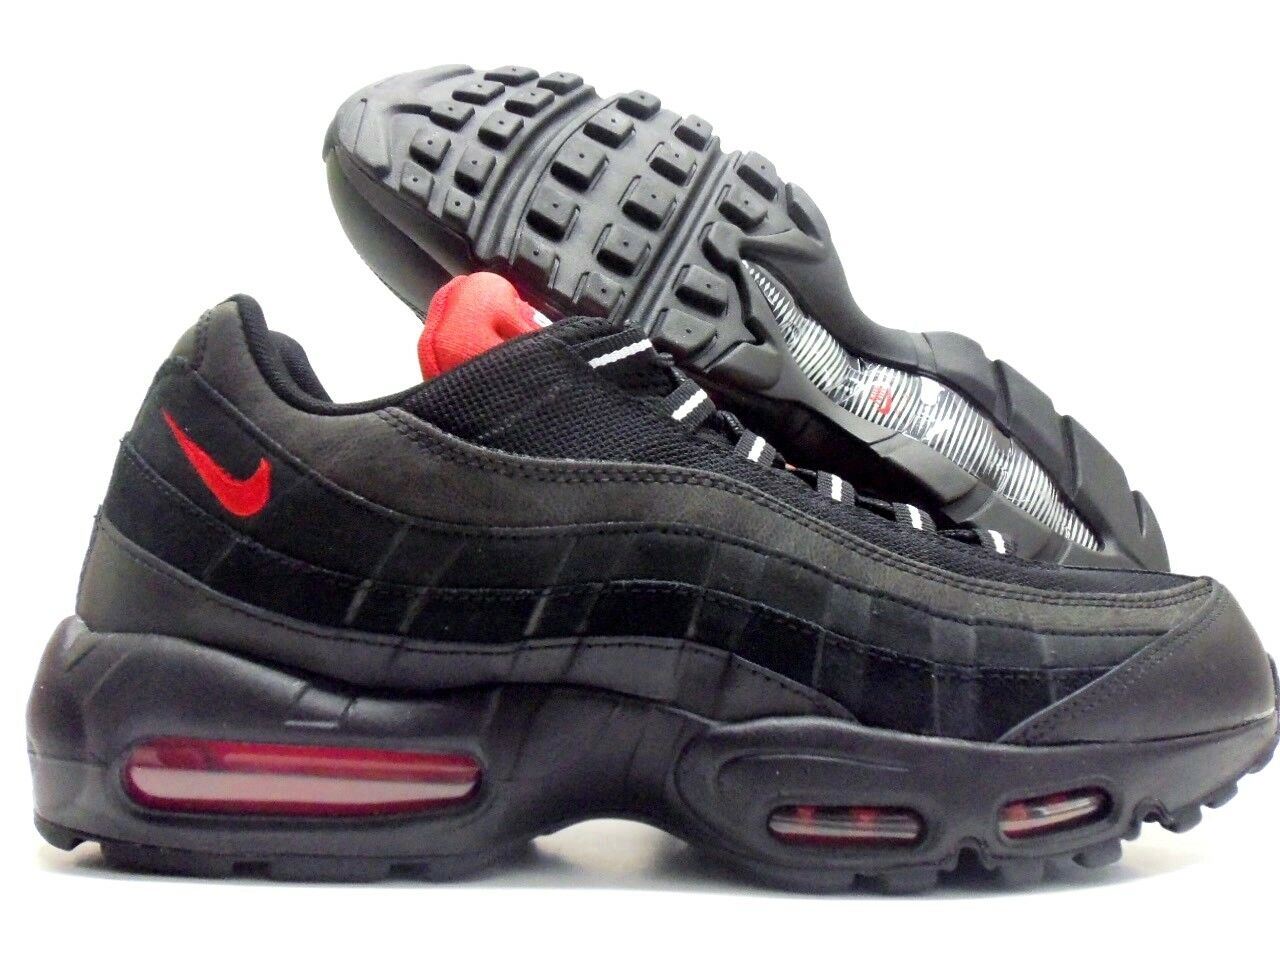 Nike Air Max 95 Essential Mens SNEAKERS 749766-016 13 for sale ... 8158d0512c